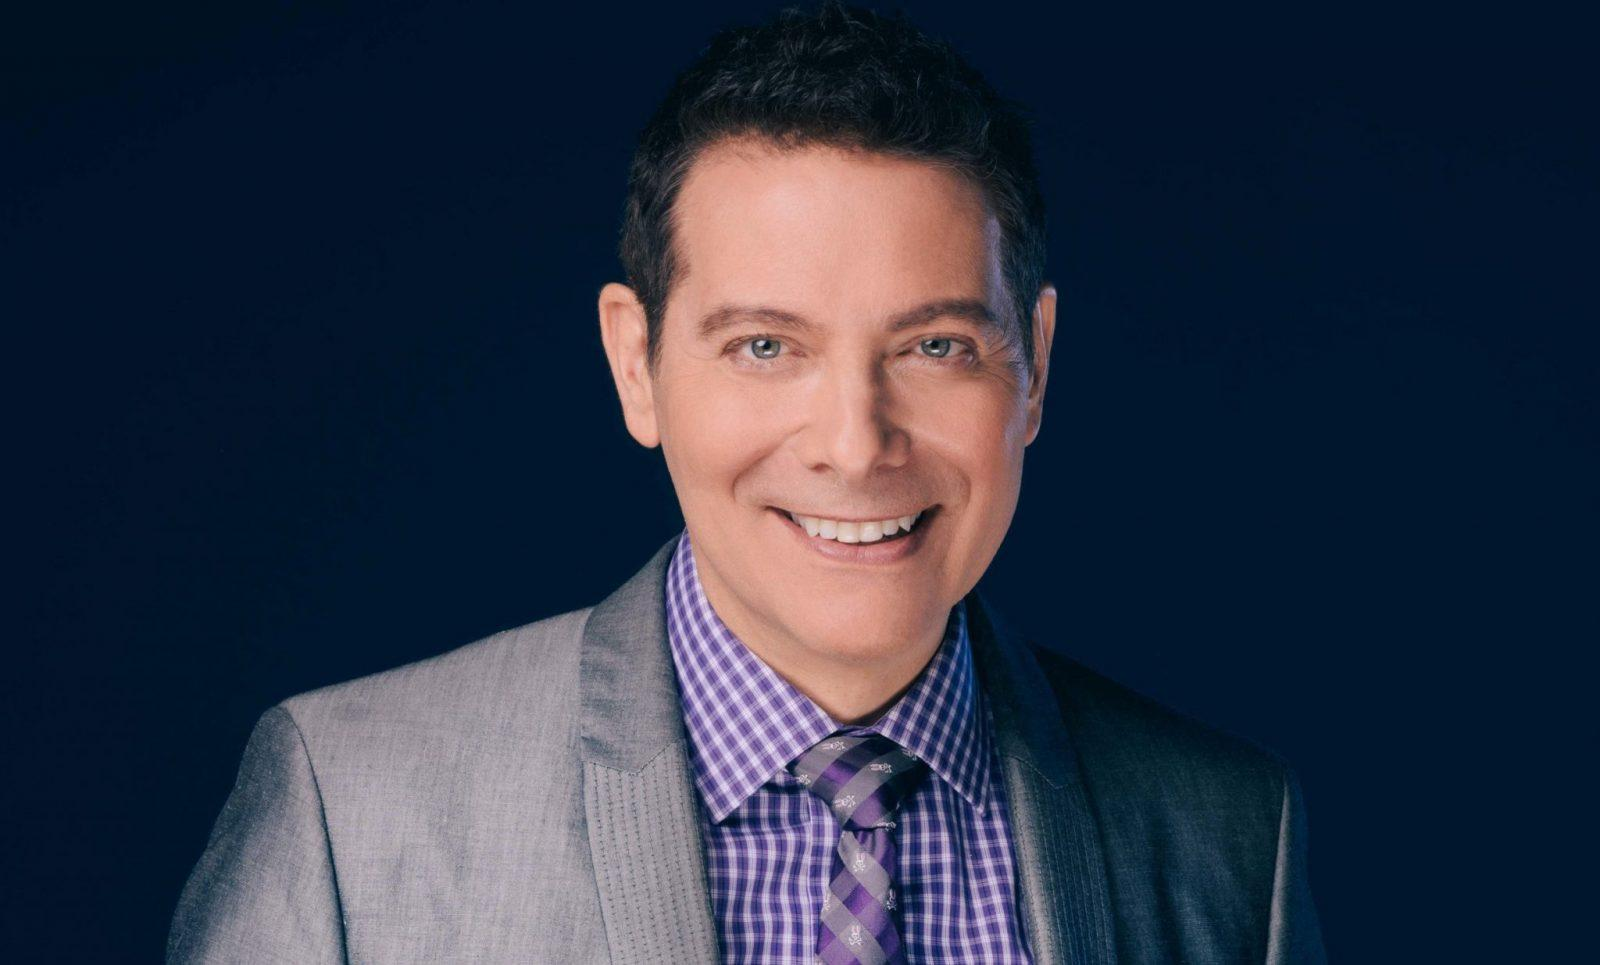 Michael Feinstein: Preserving the Great American Songbook